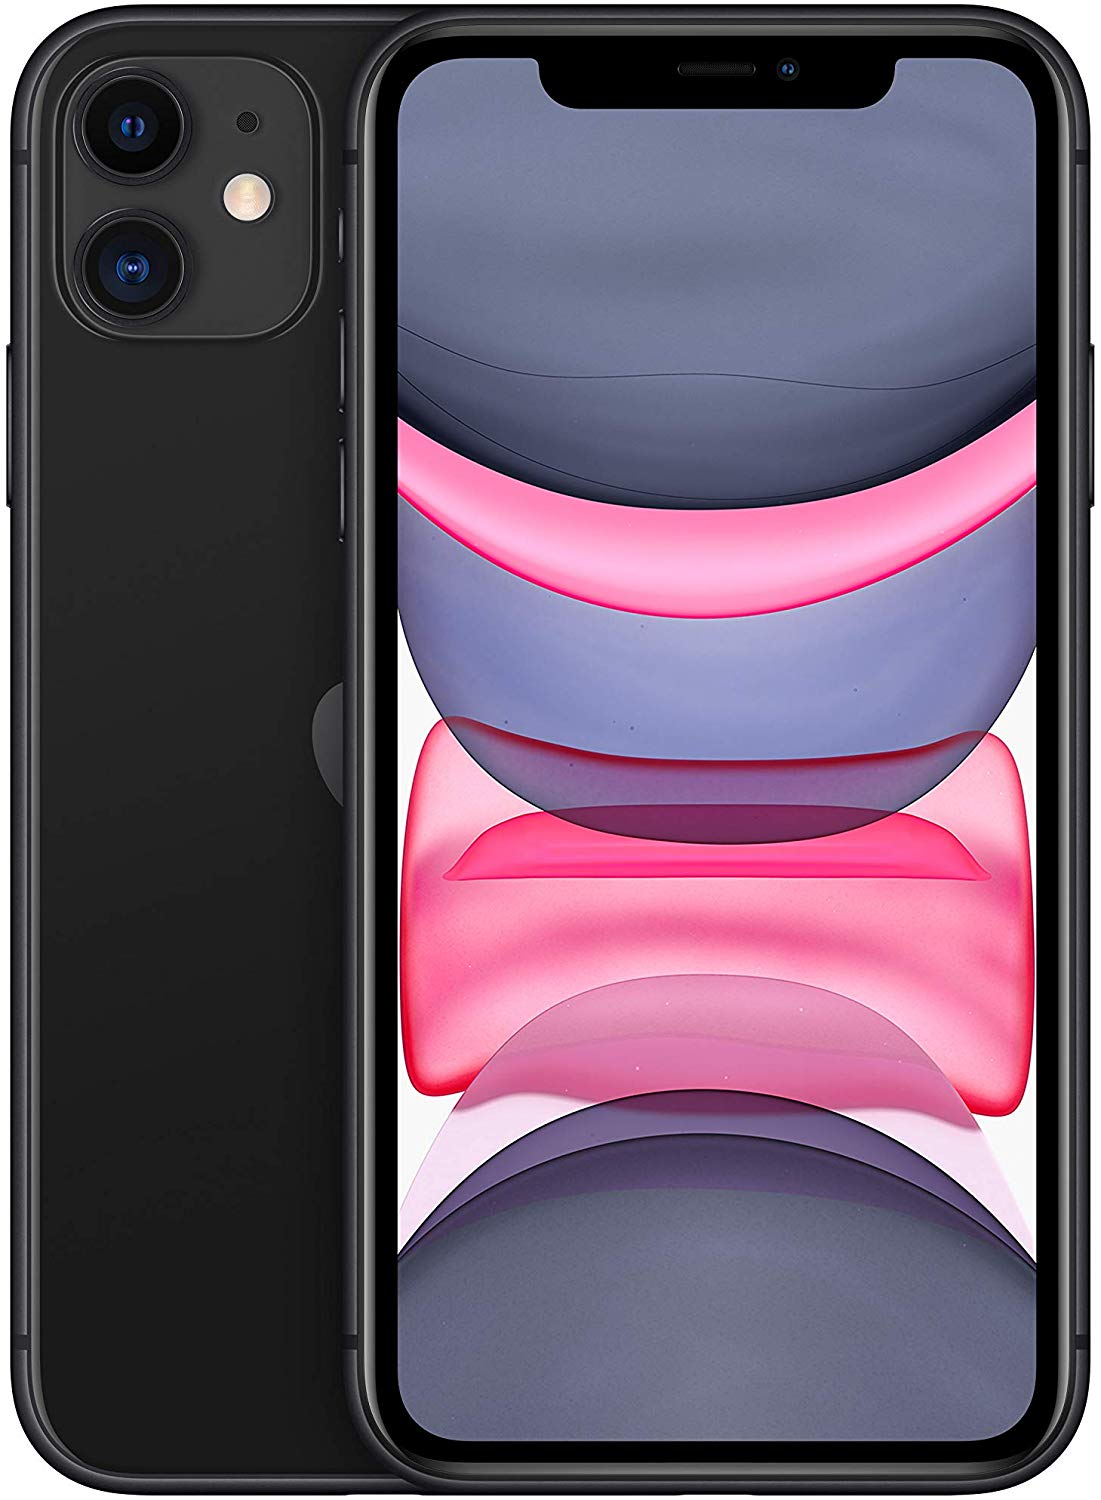 Electricals & Technology Apple iPhone 11 64GB Black